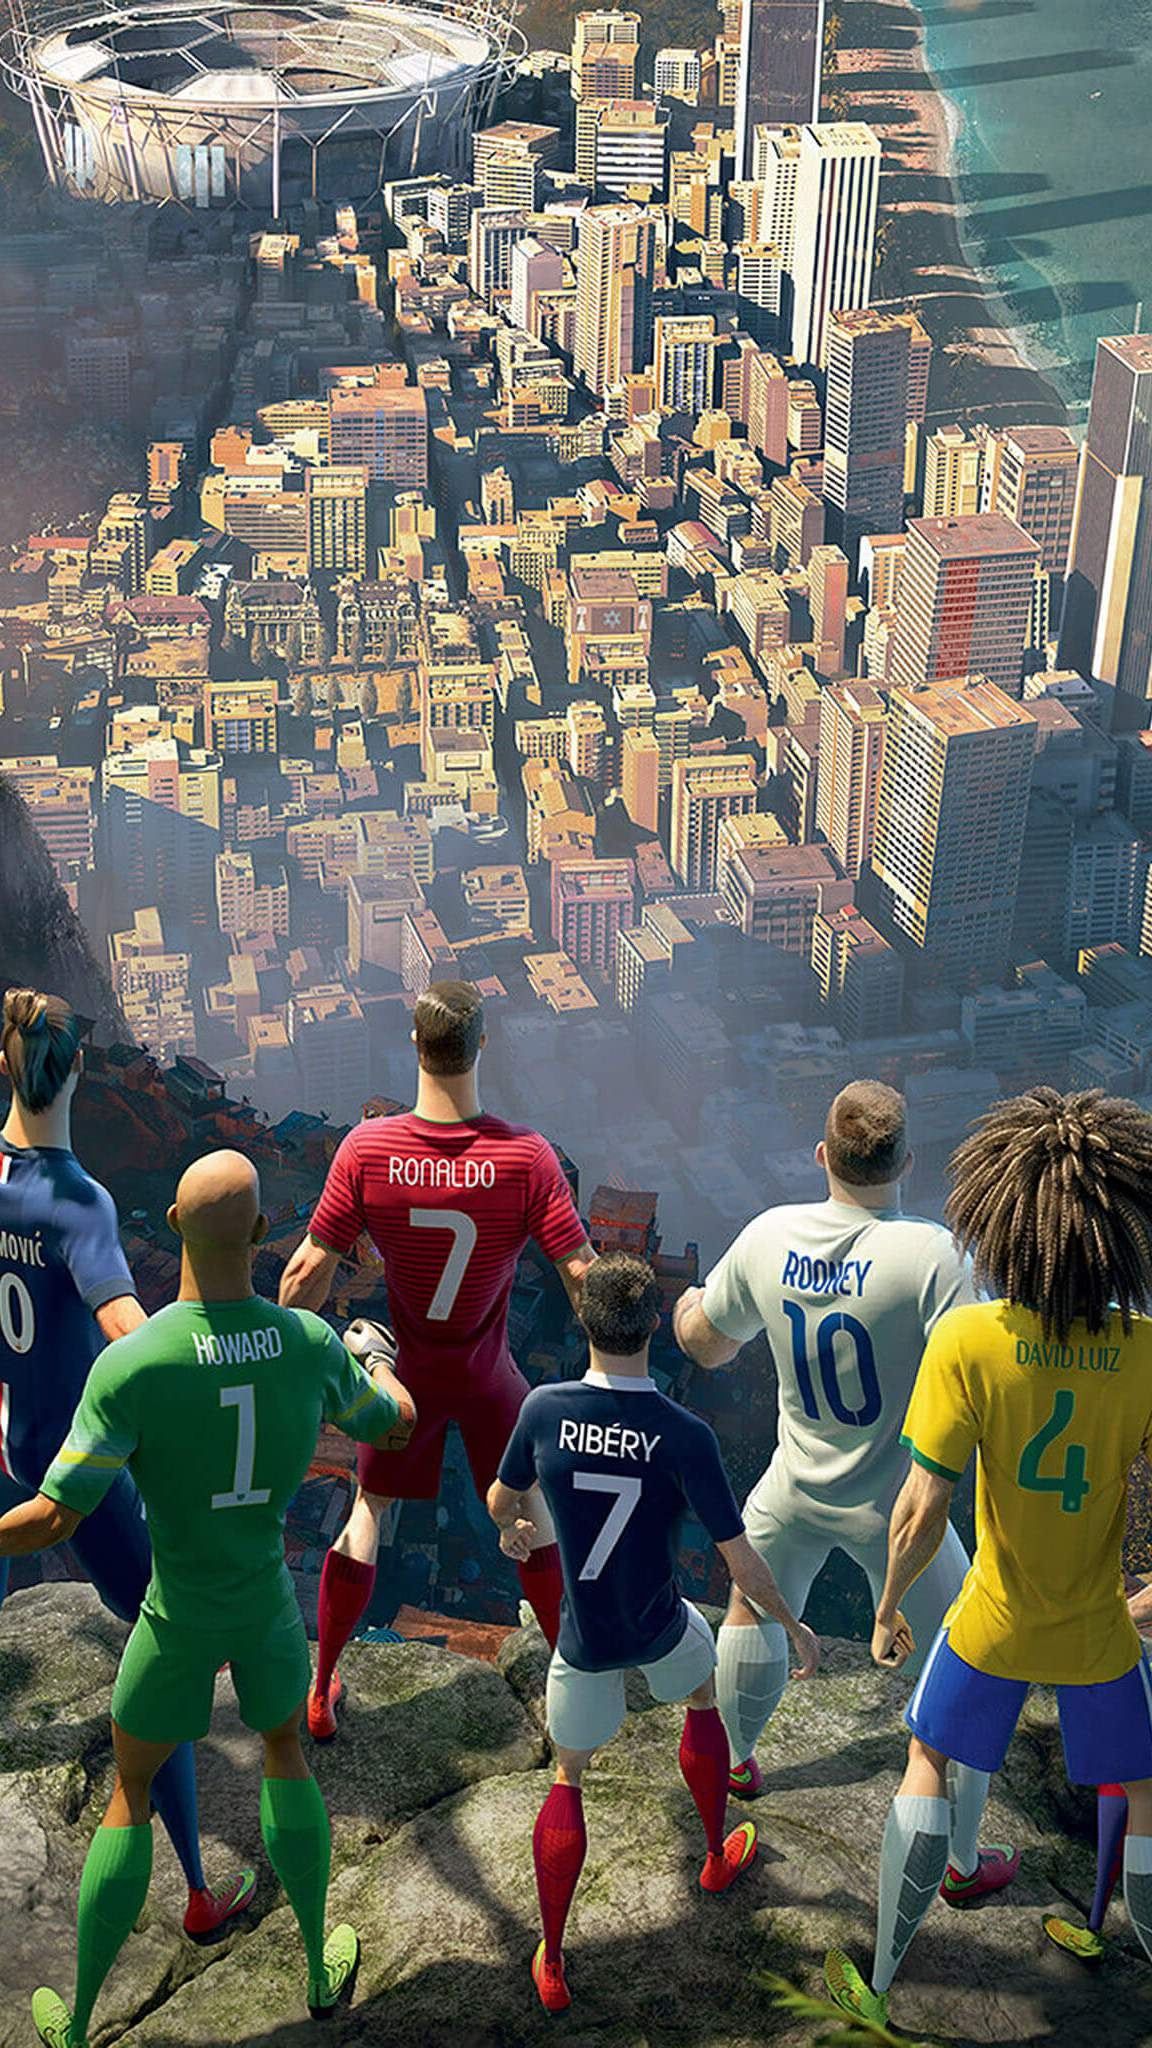 Cute Animal Soccer Wallpaper Pictures Nike Football Game Brazil Iphone Wallpaper Iphone Wallpapers